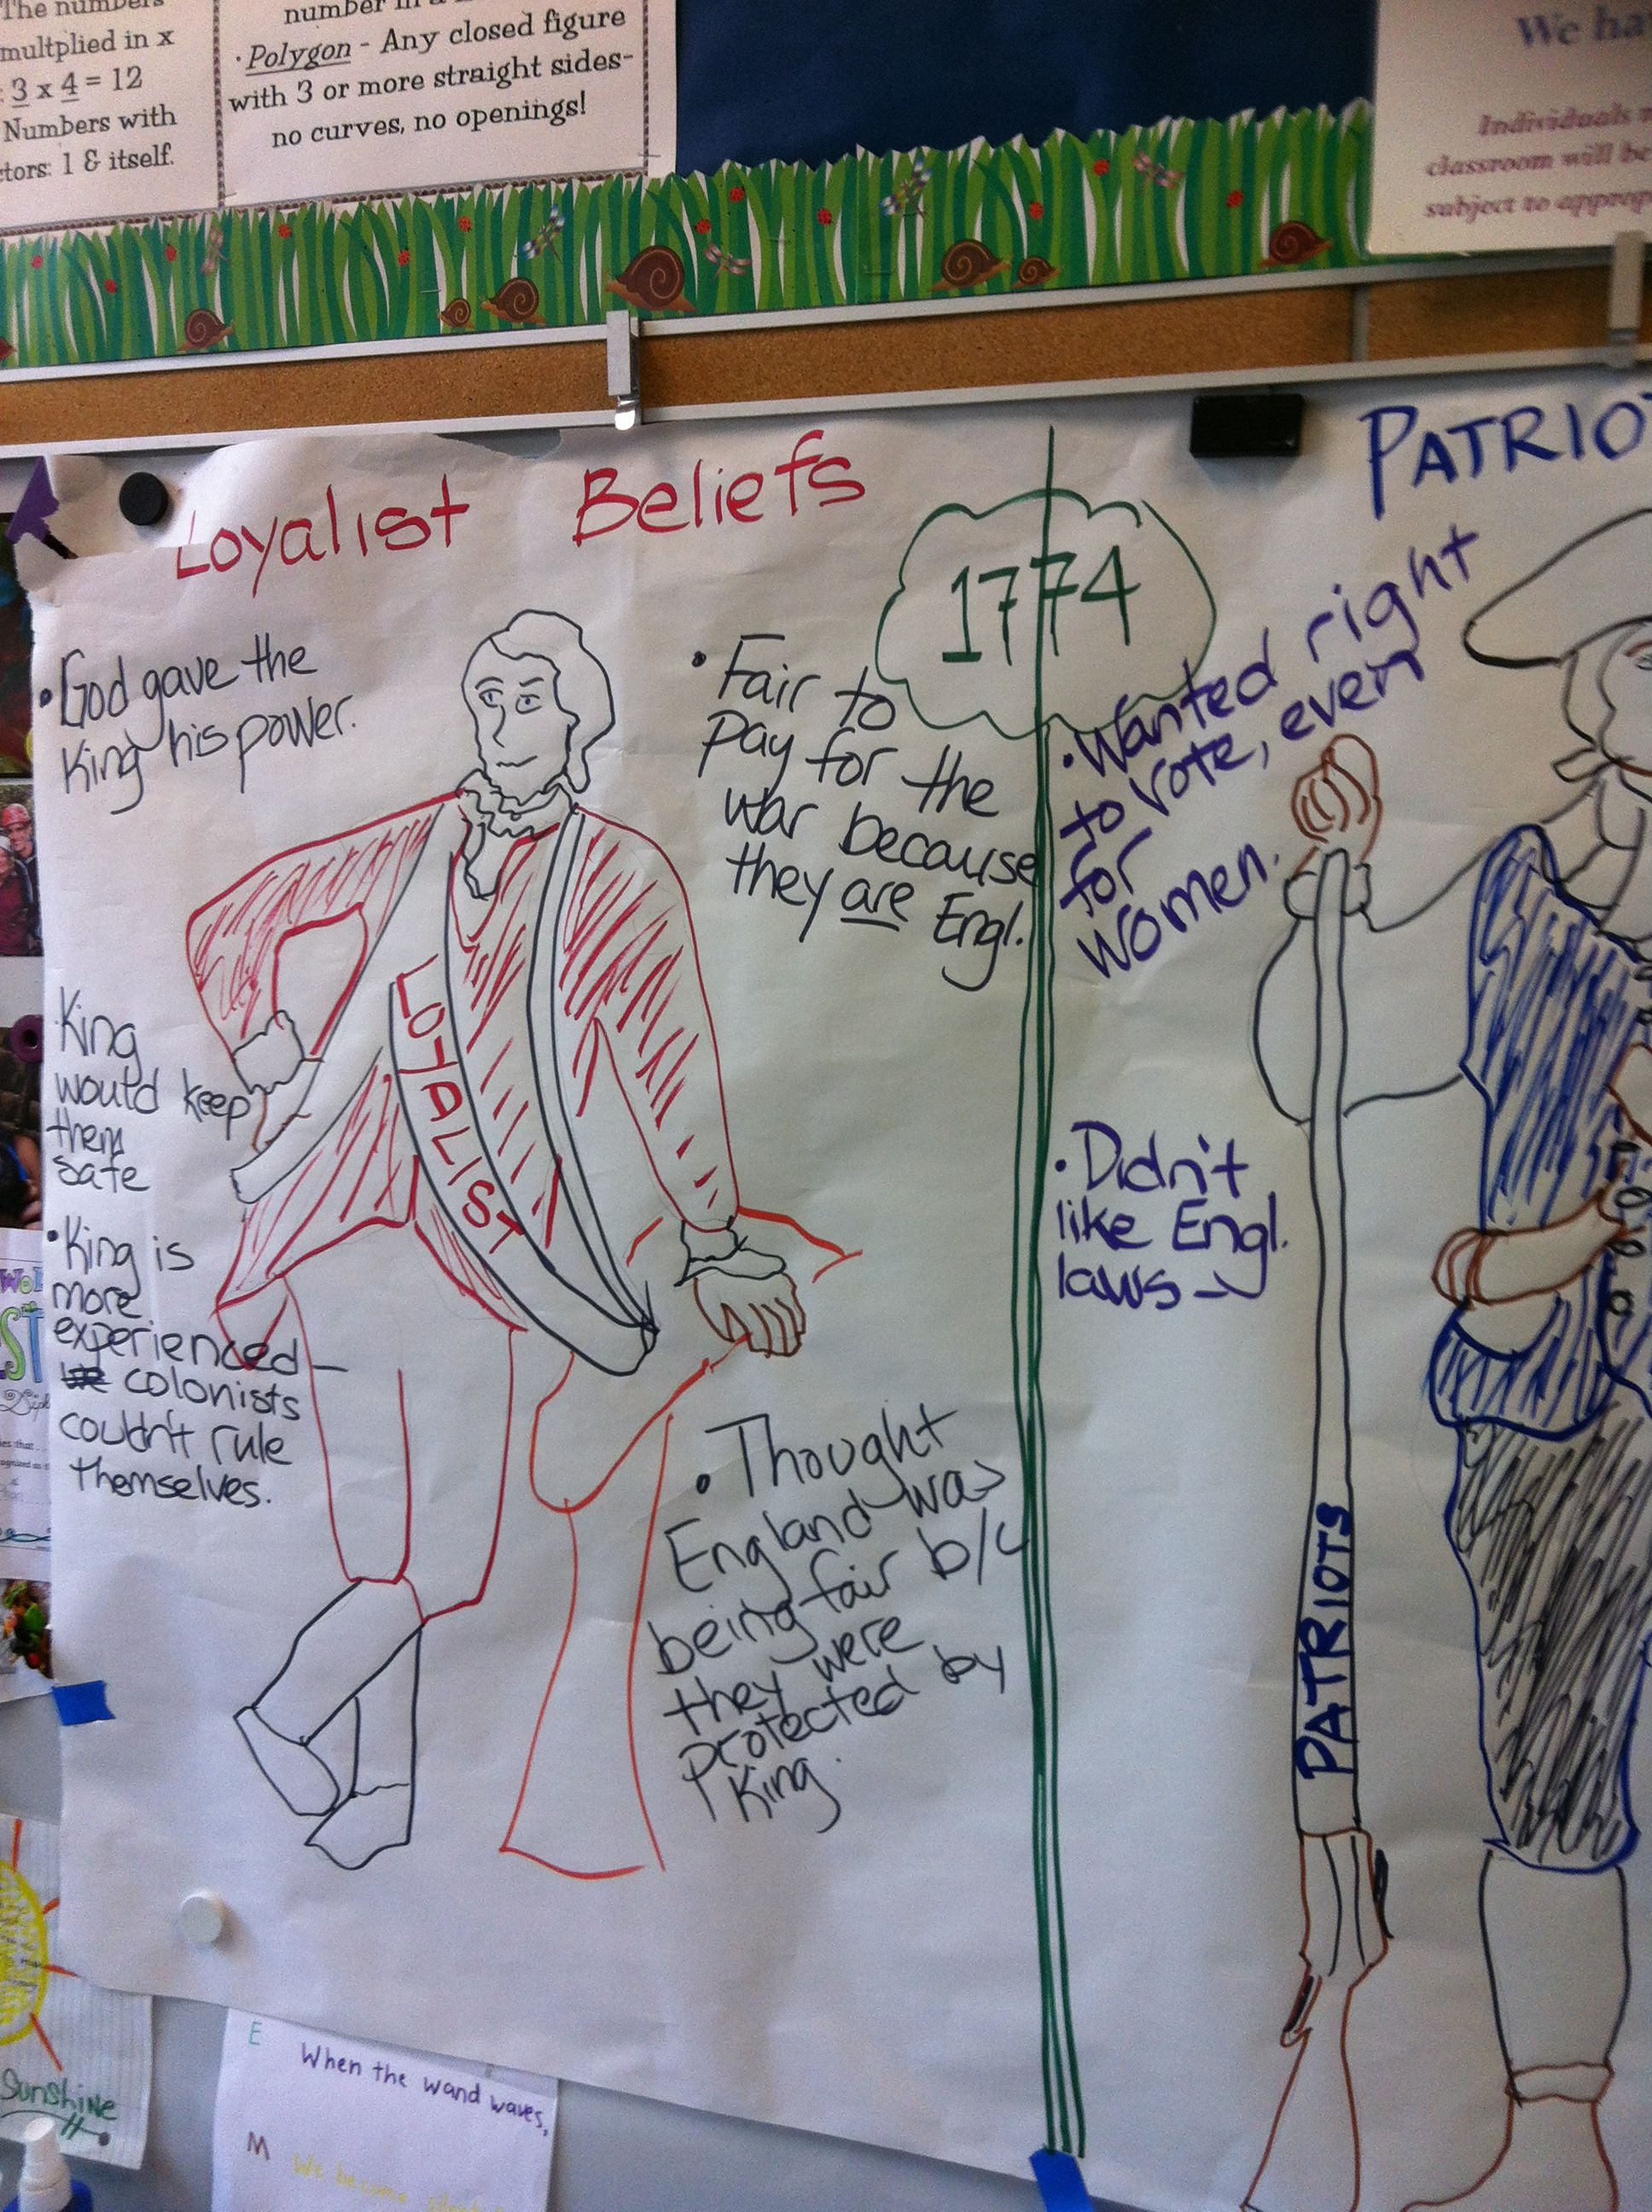 Patriot Vs Loyalist Comparing And Contrasting Views Of The American Revolution Teaching American History Social Studies Lesson Plans History Lesson Plans